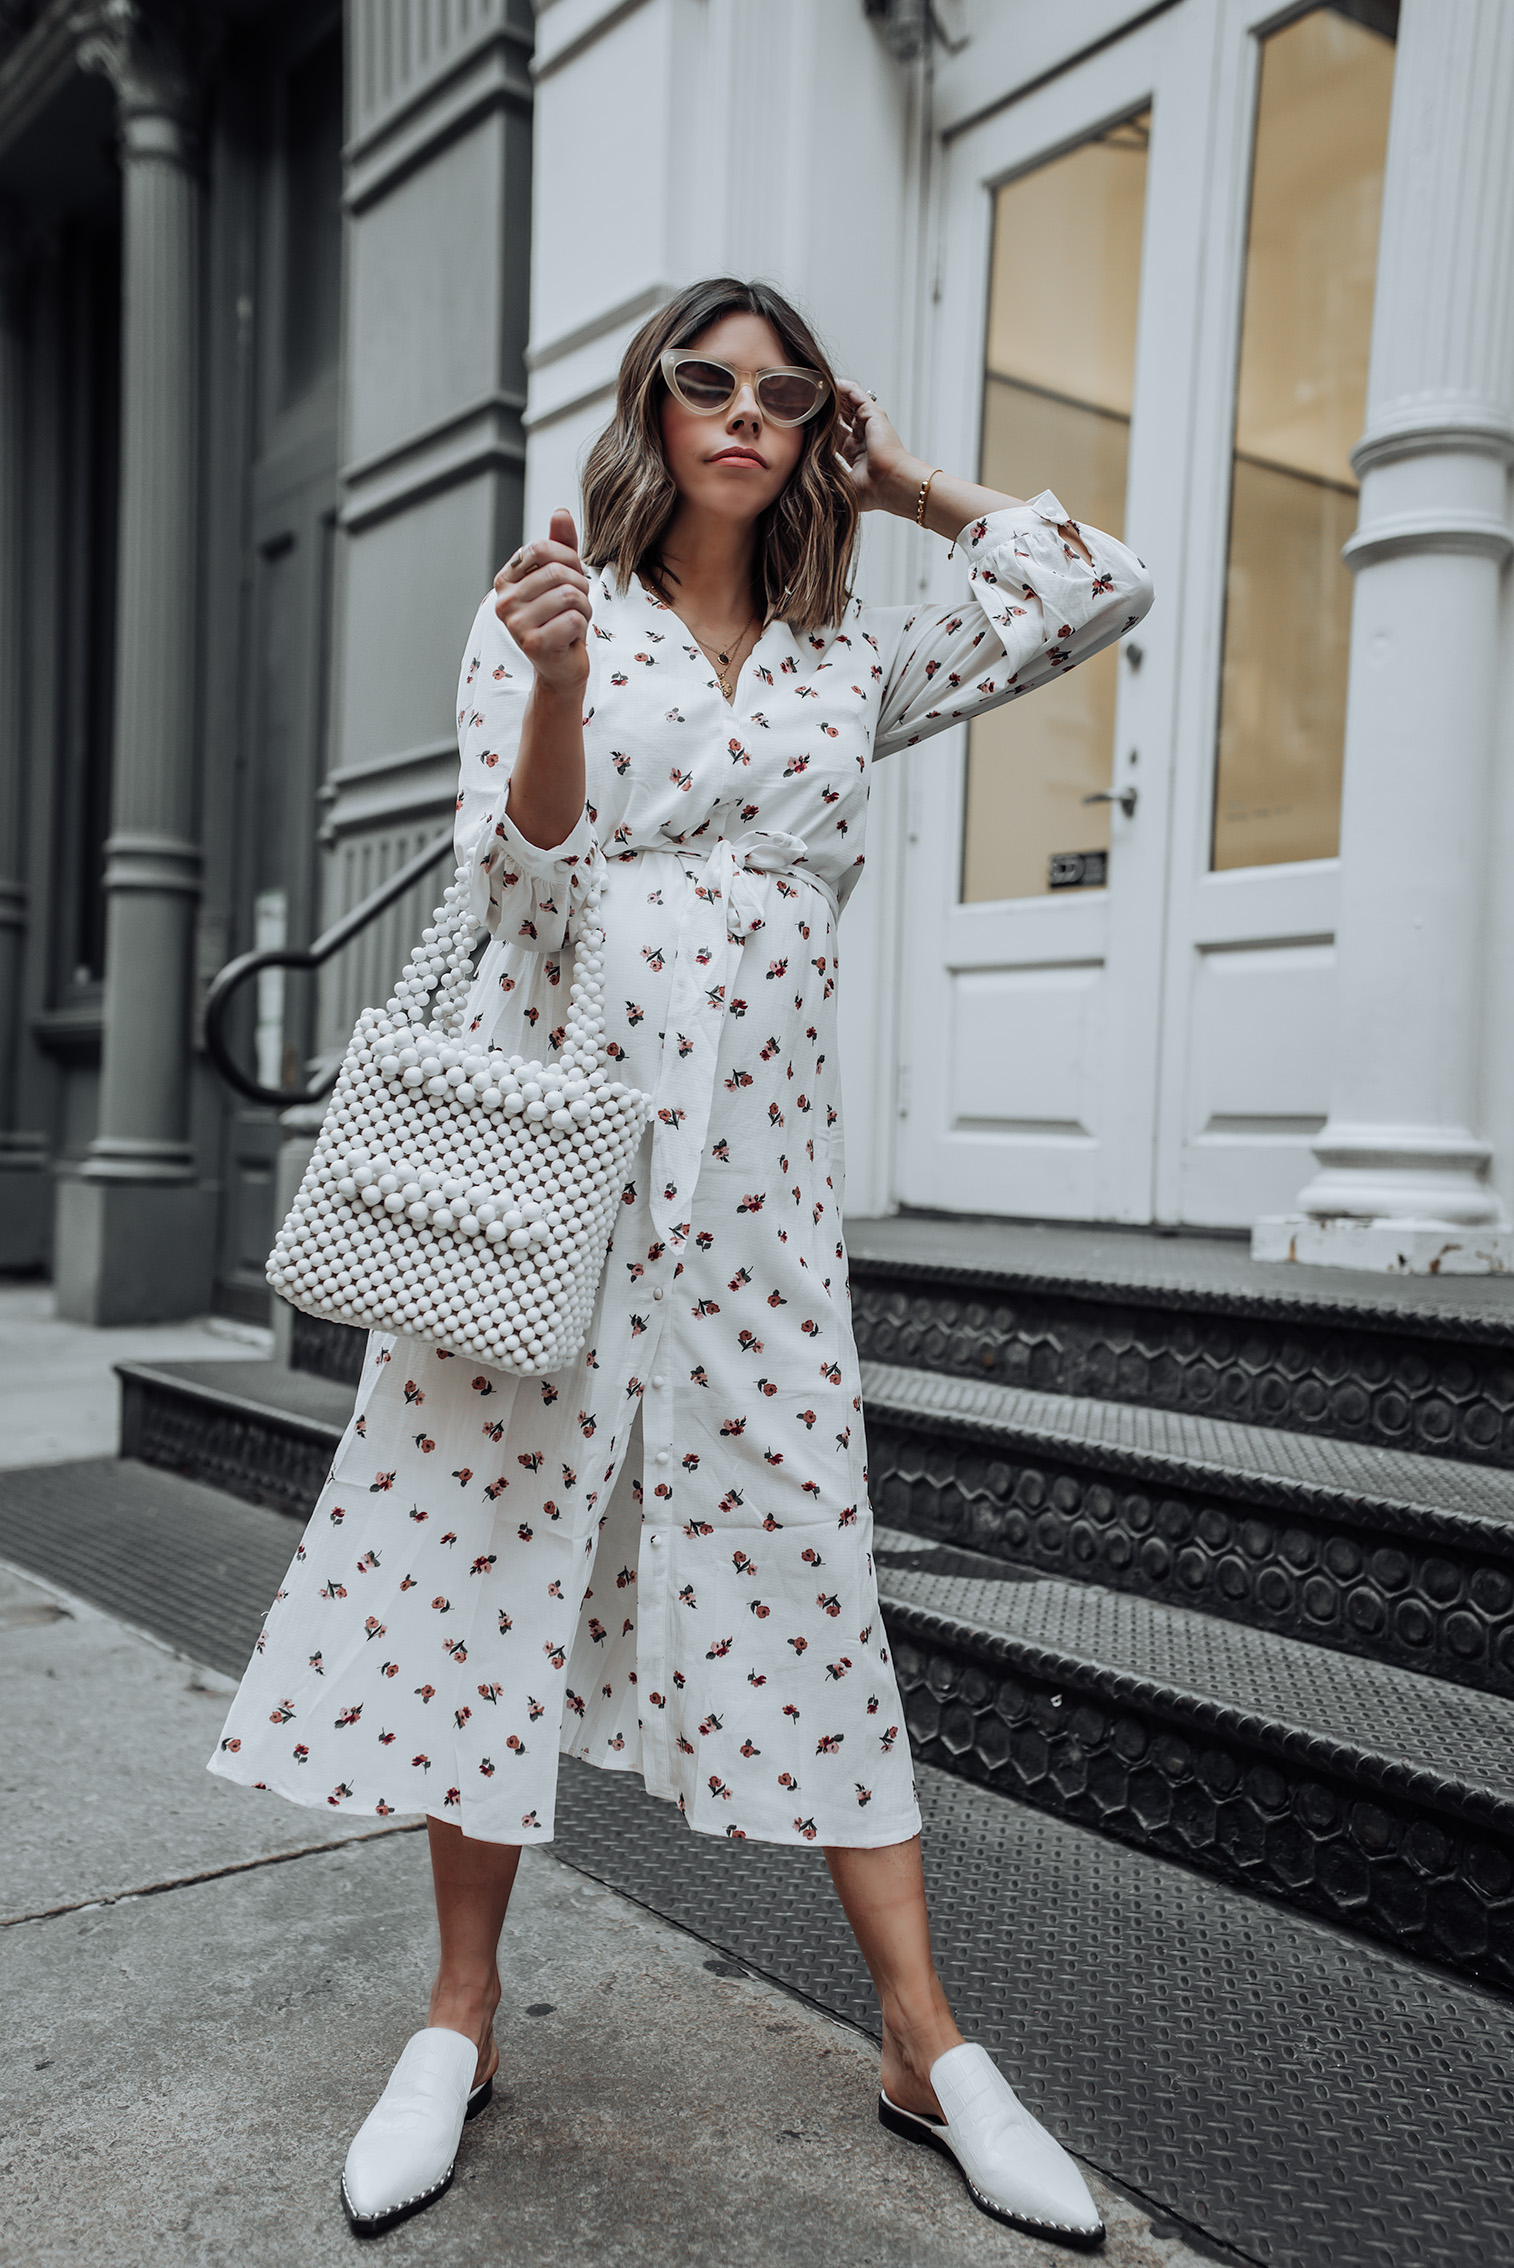 All white | Midi Wrap Dress | Sigerson Morrison Elana Point Slides | Beaded Bag |